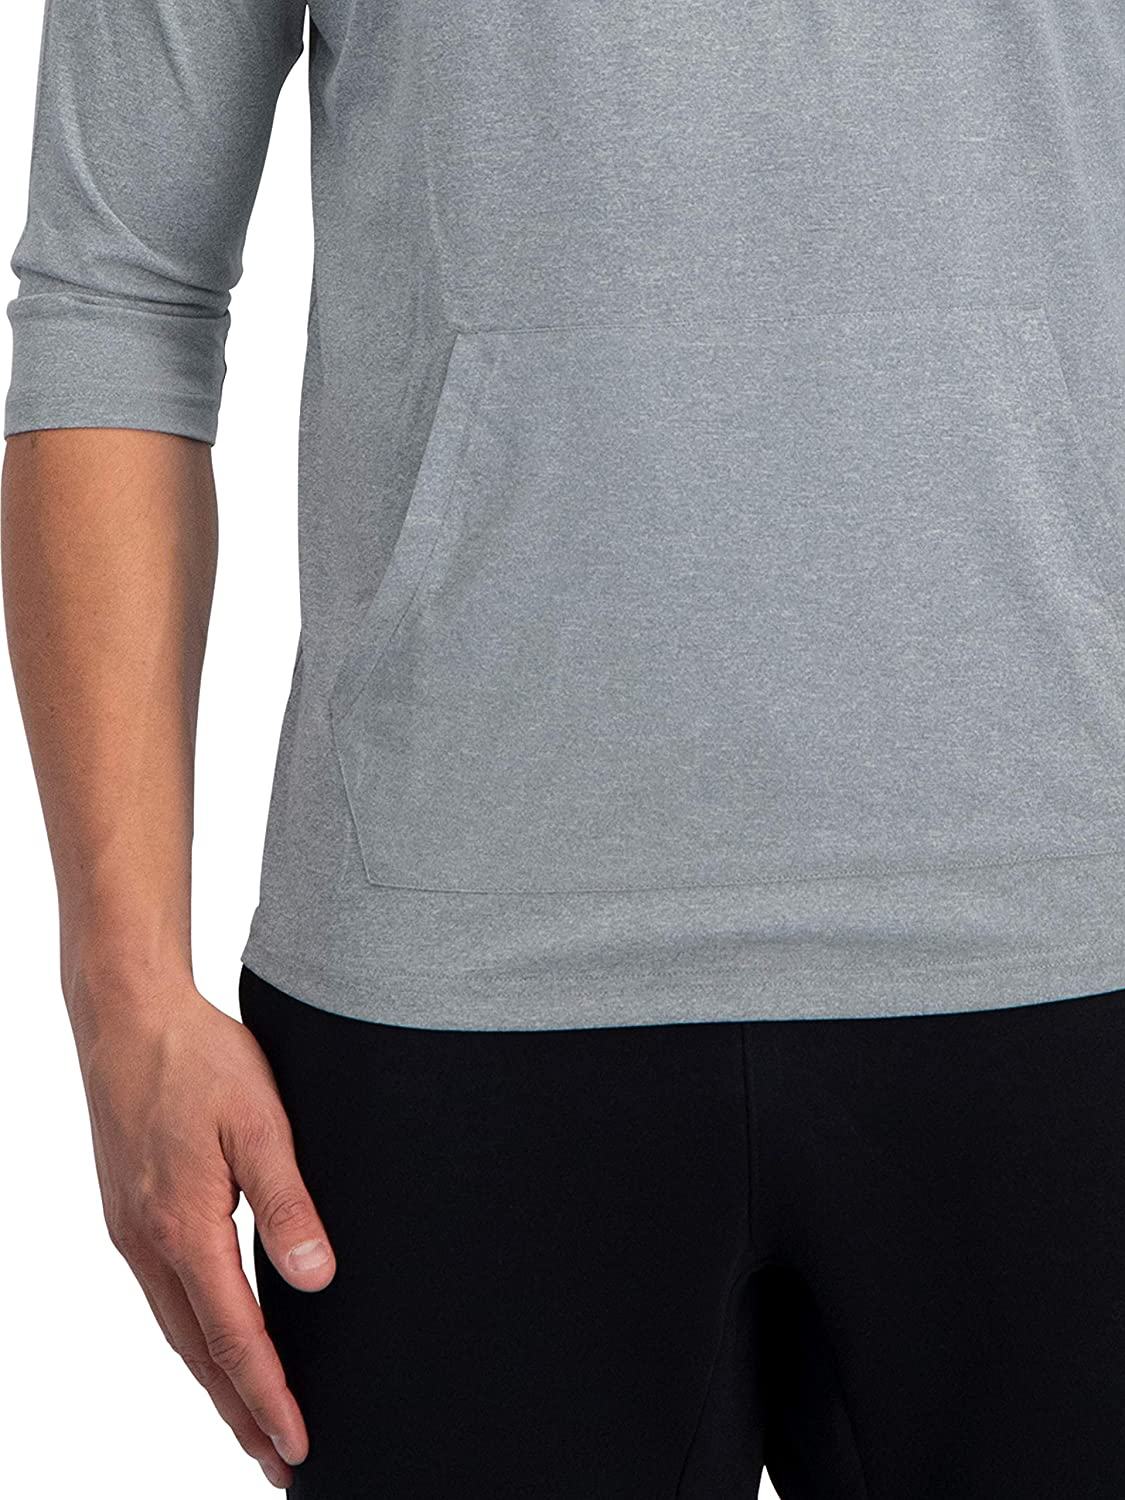 Dry Fit Workout Hoodies for Gym and Running Grey 3//4 Sleeve Lightweight Hoodie Men